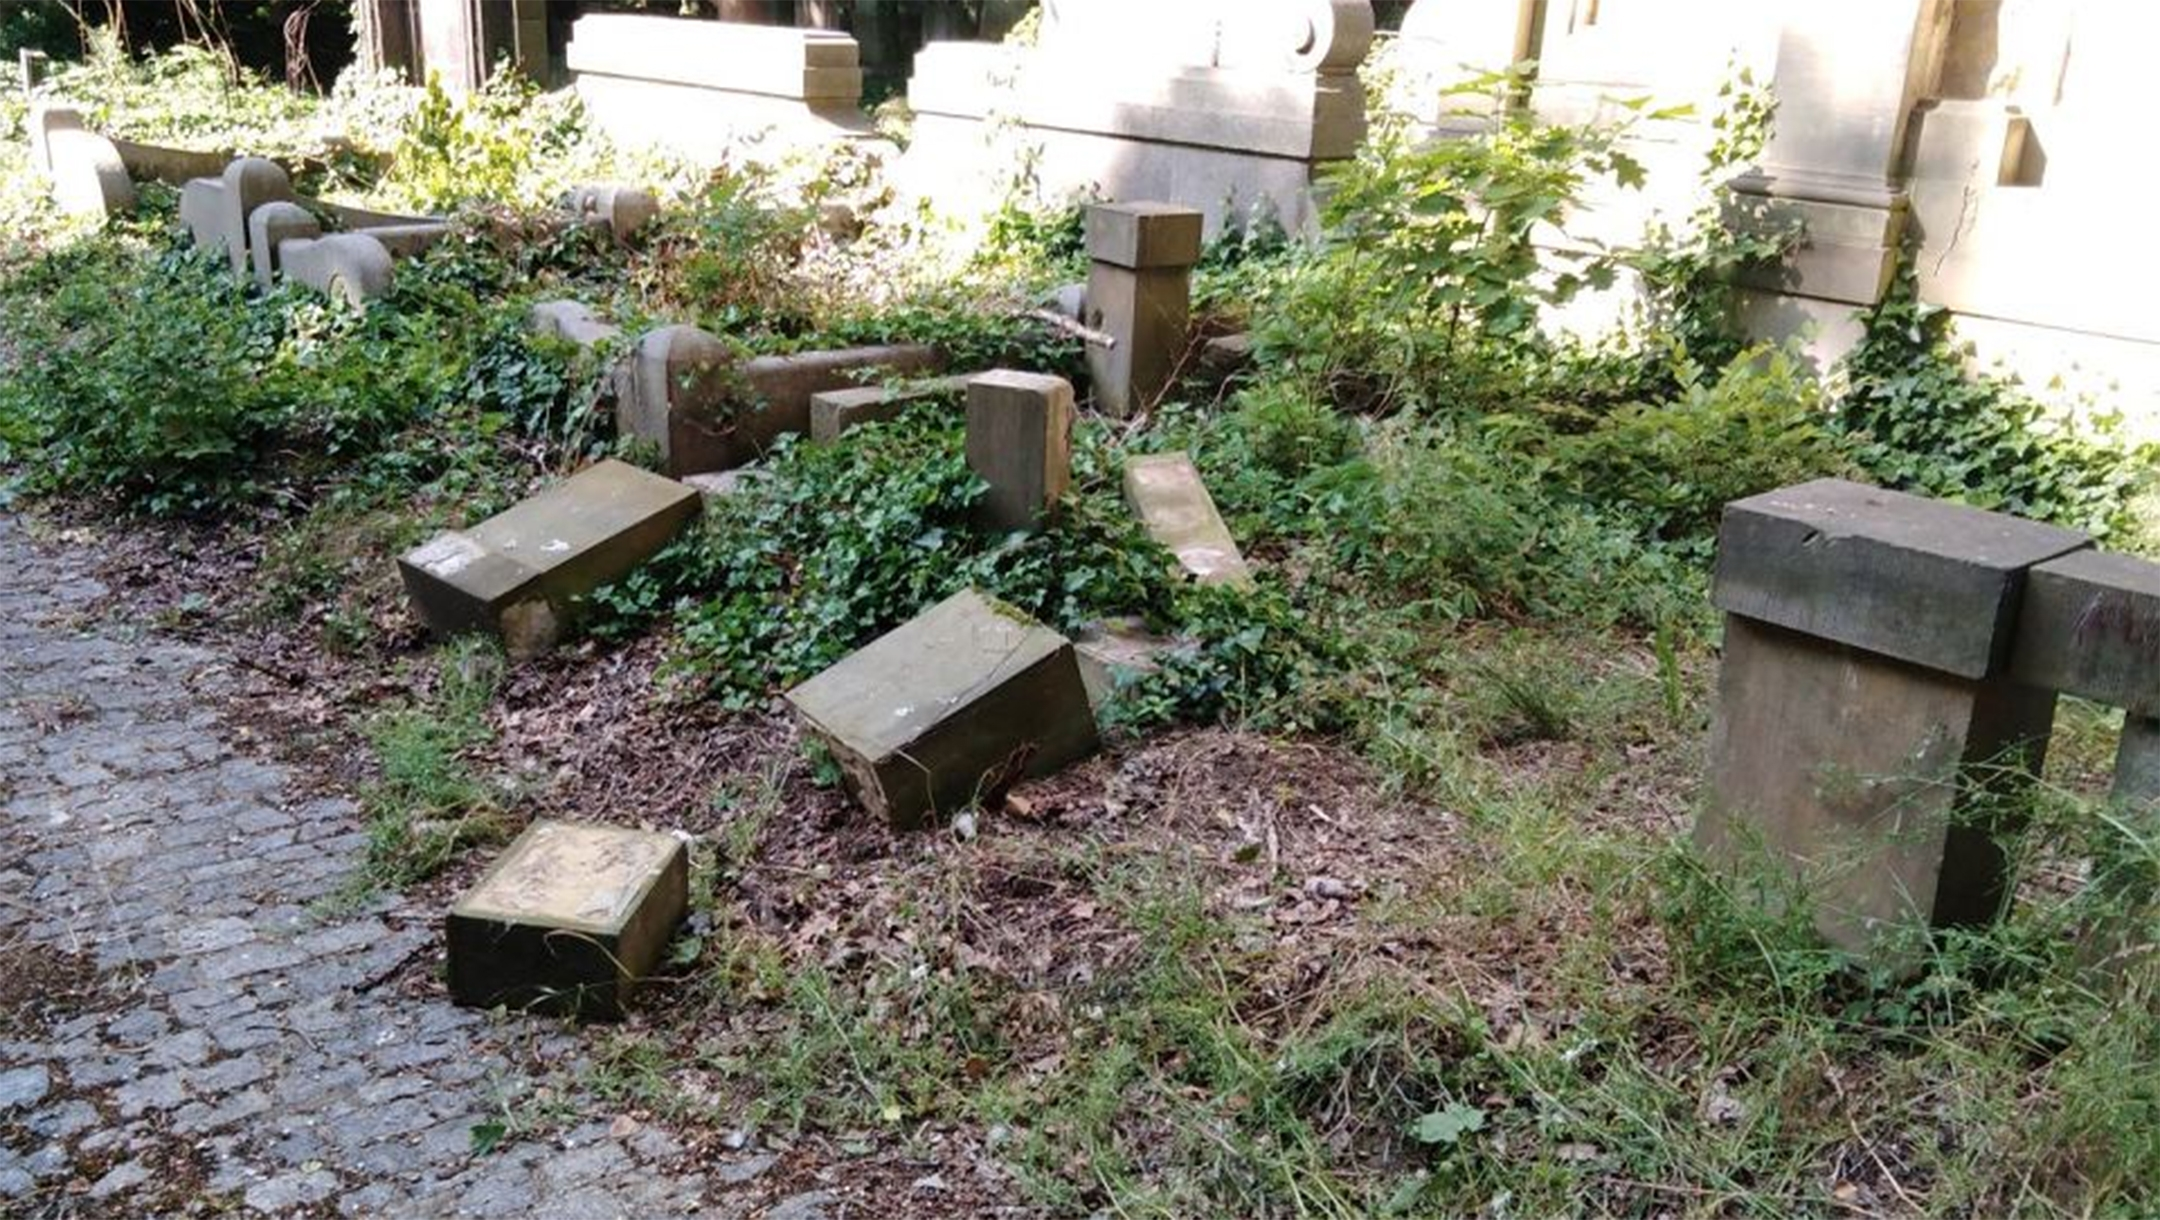 Polish schoolchildren destroyed dozens of Jewish headstones. They said they wanted to build a fortress.